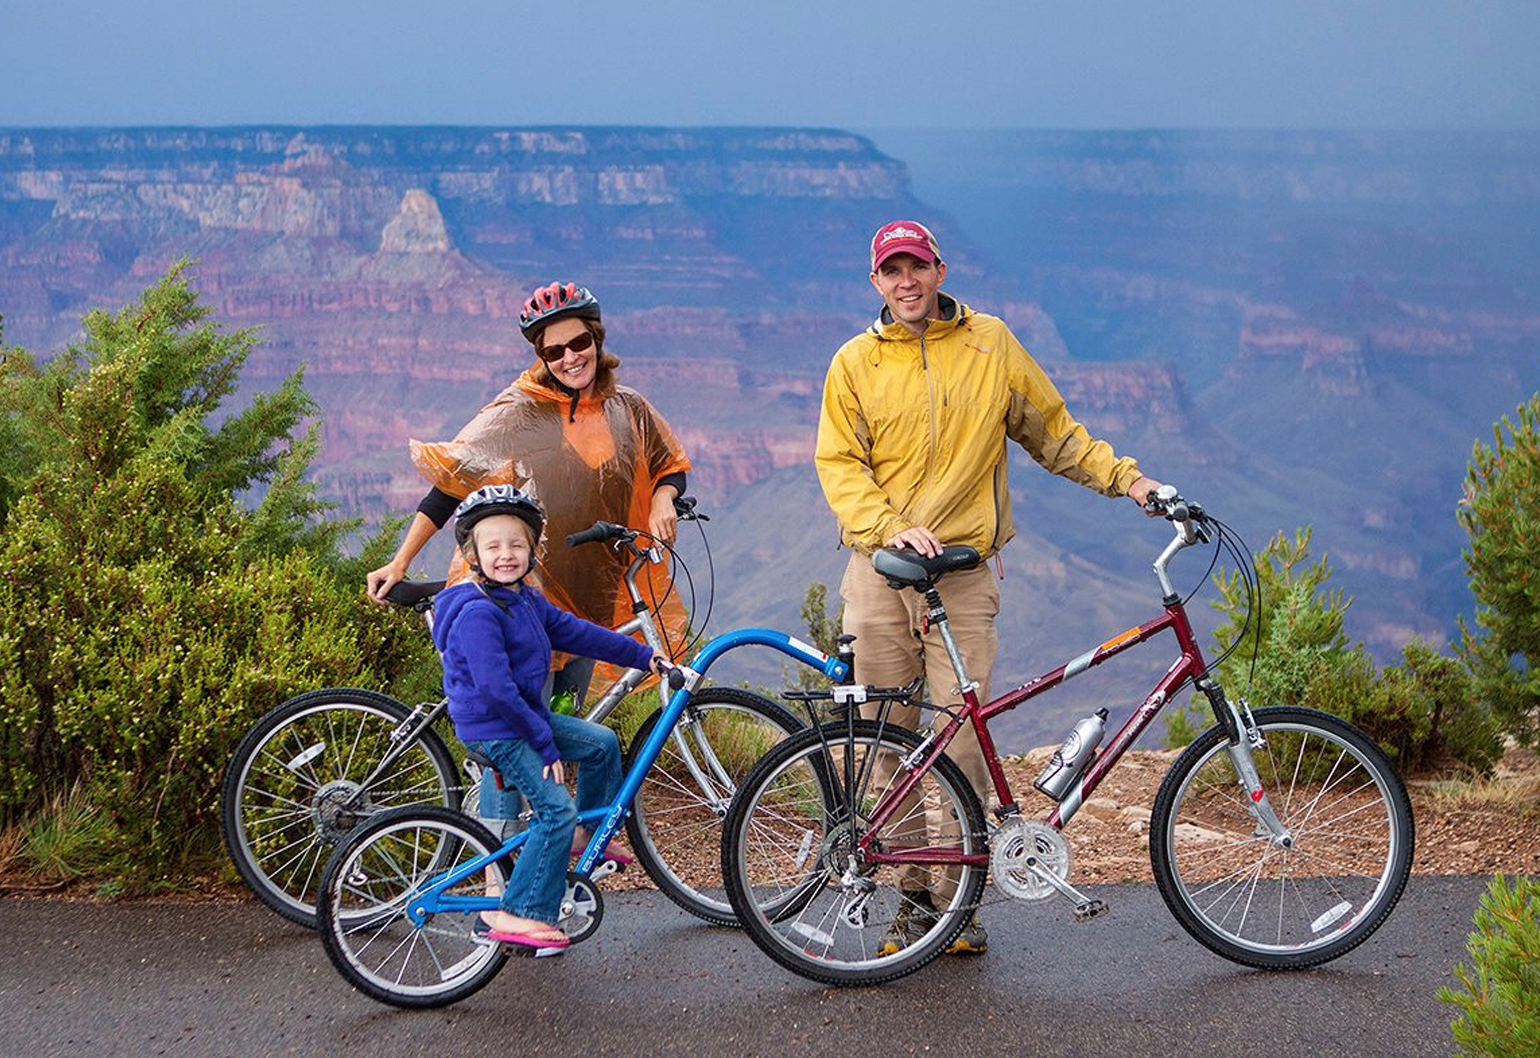 75ac0a8112e6 Yaki Point Bicycle Tour - Bike Grand Canyon